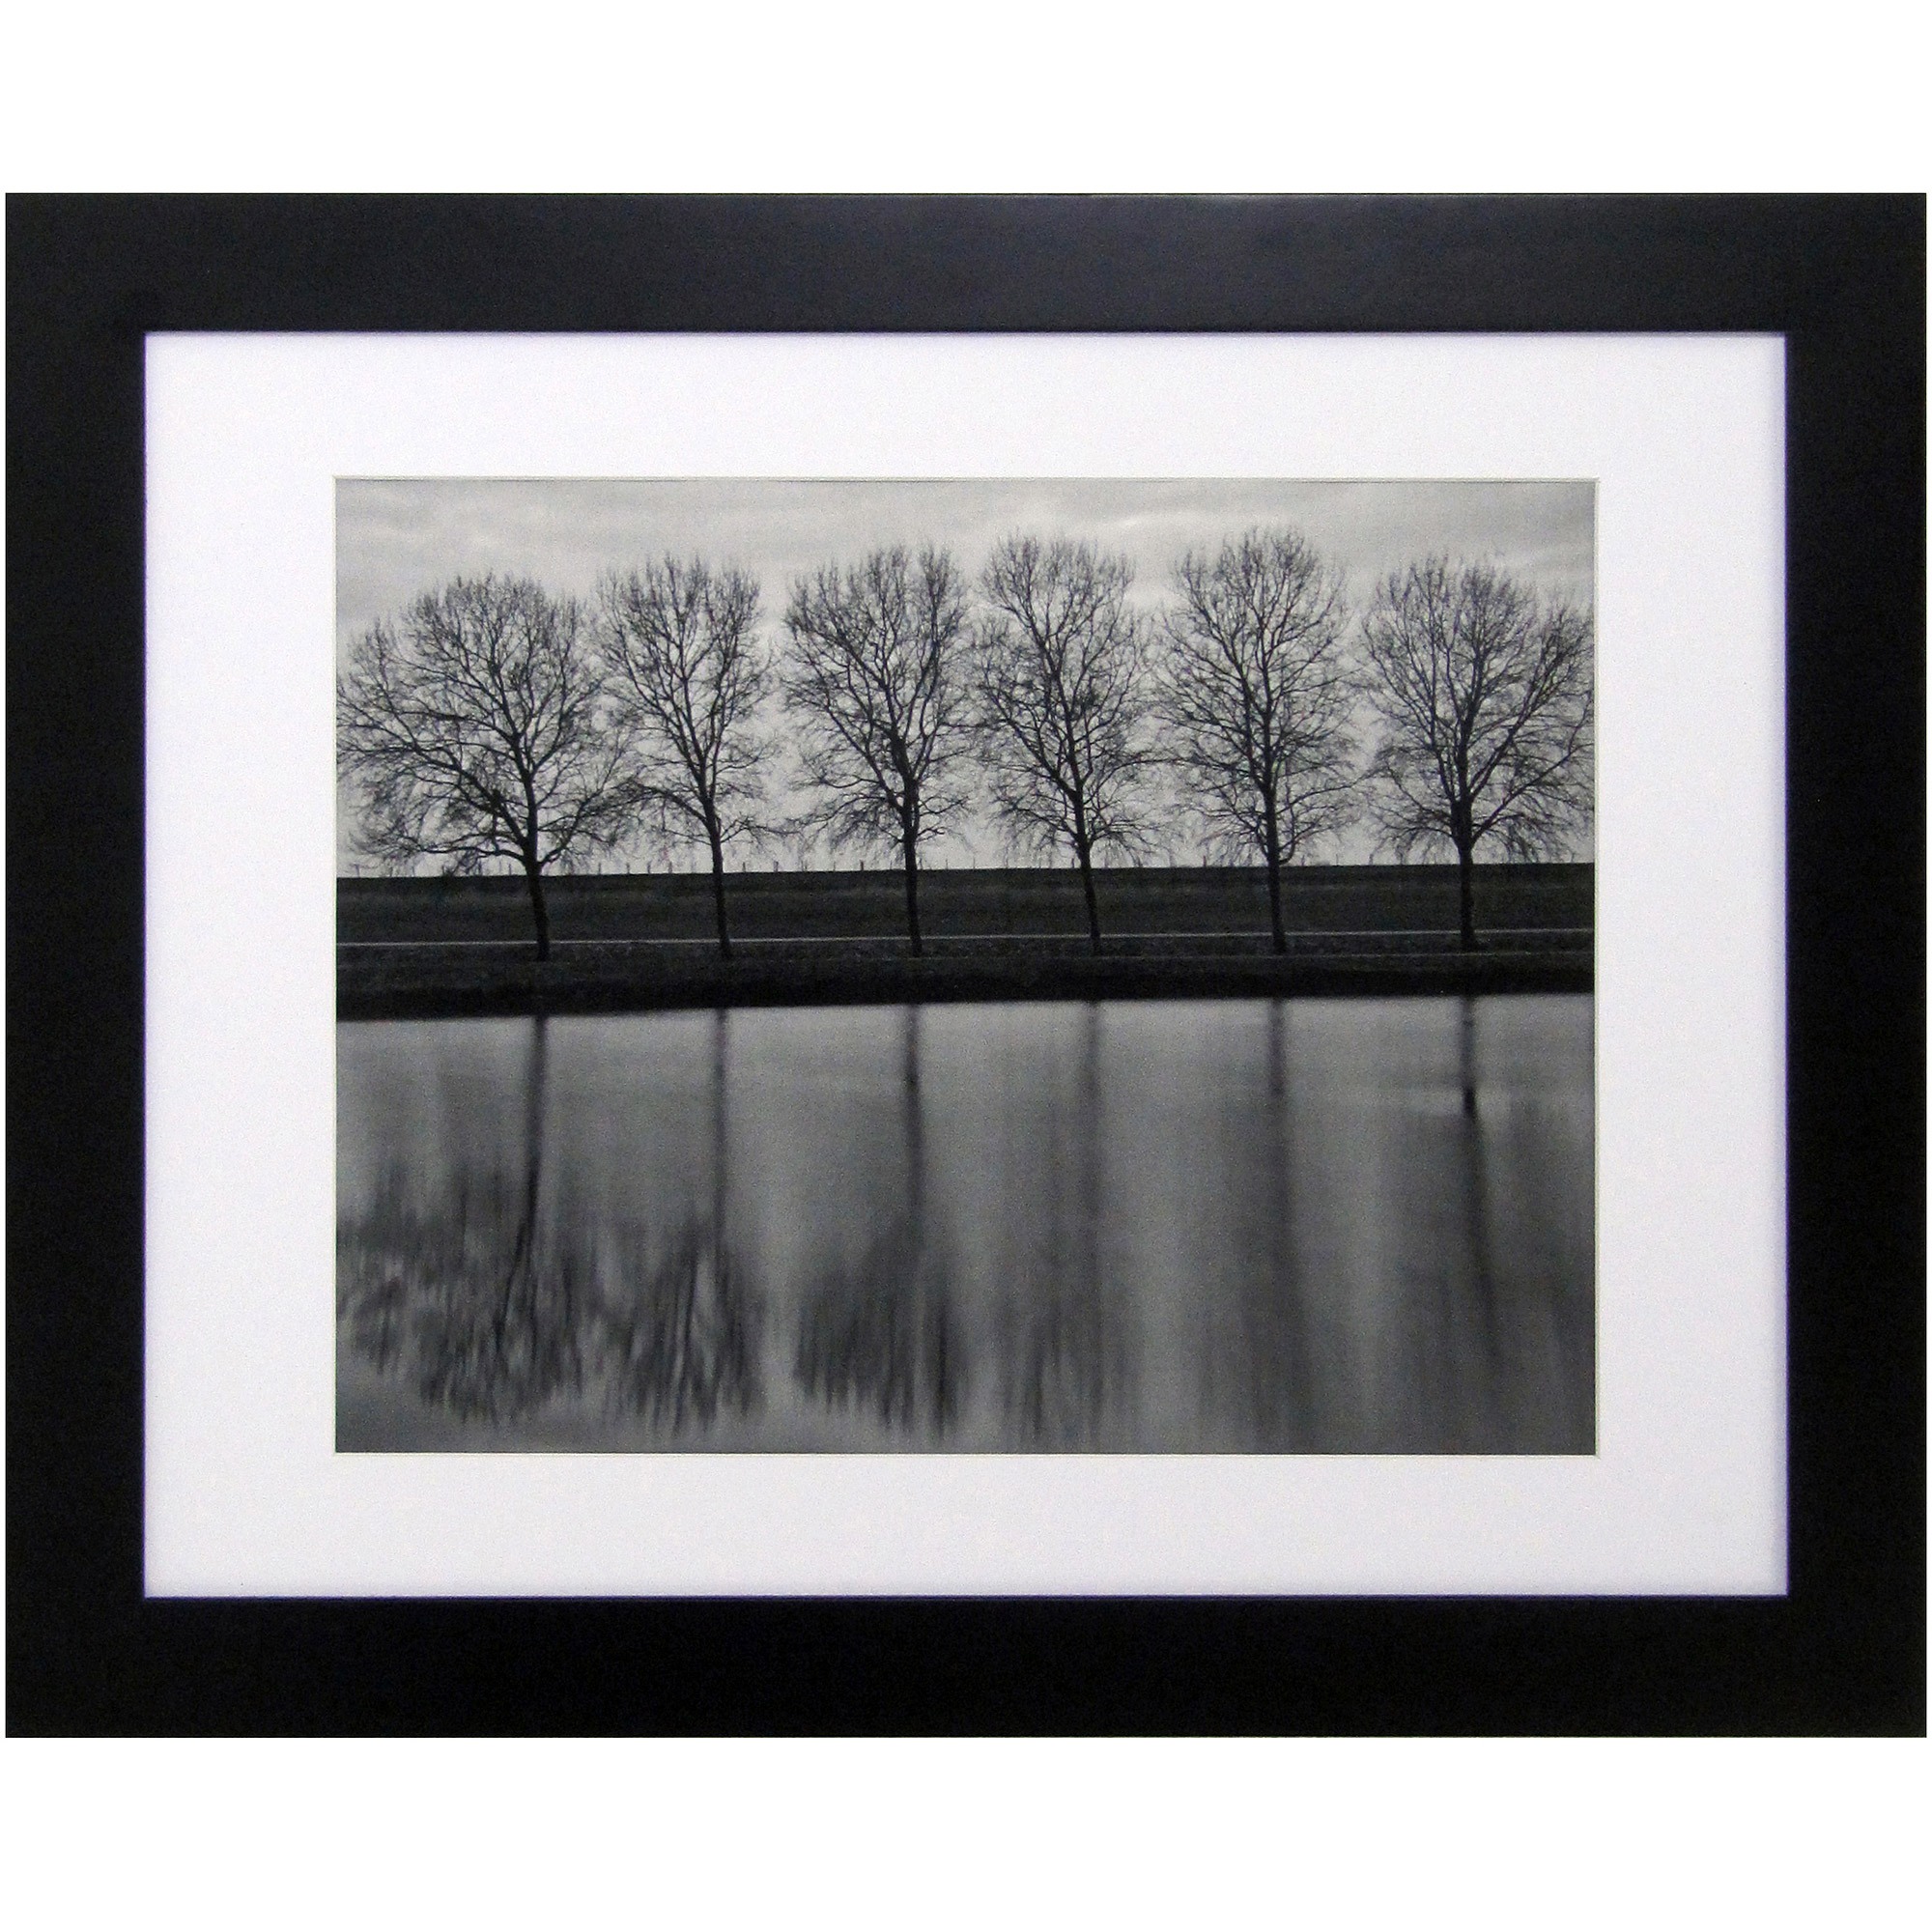 "Better Homes and Gardens Black Picture Frame, 16"" x 20"", Matted to 11"" x 14"""